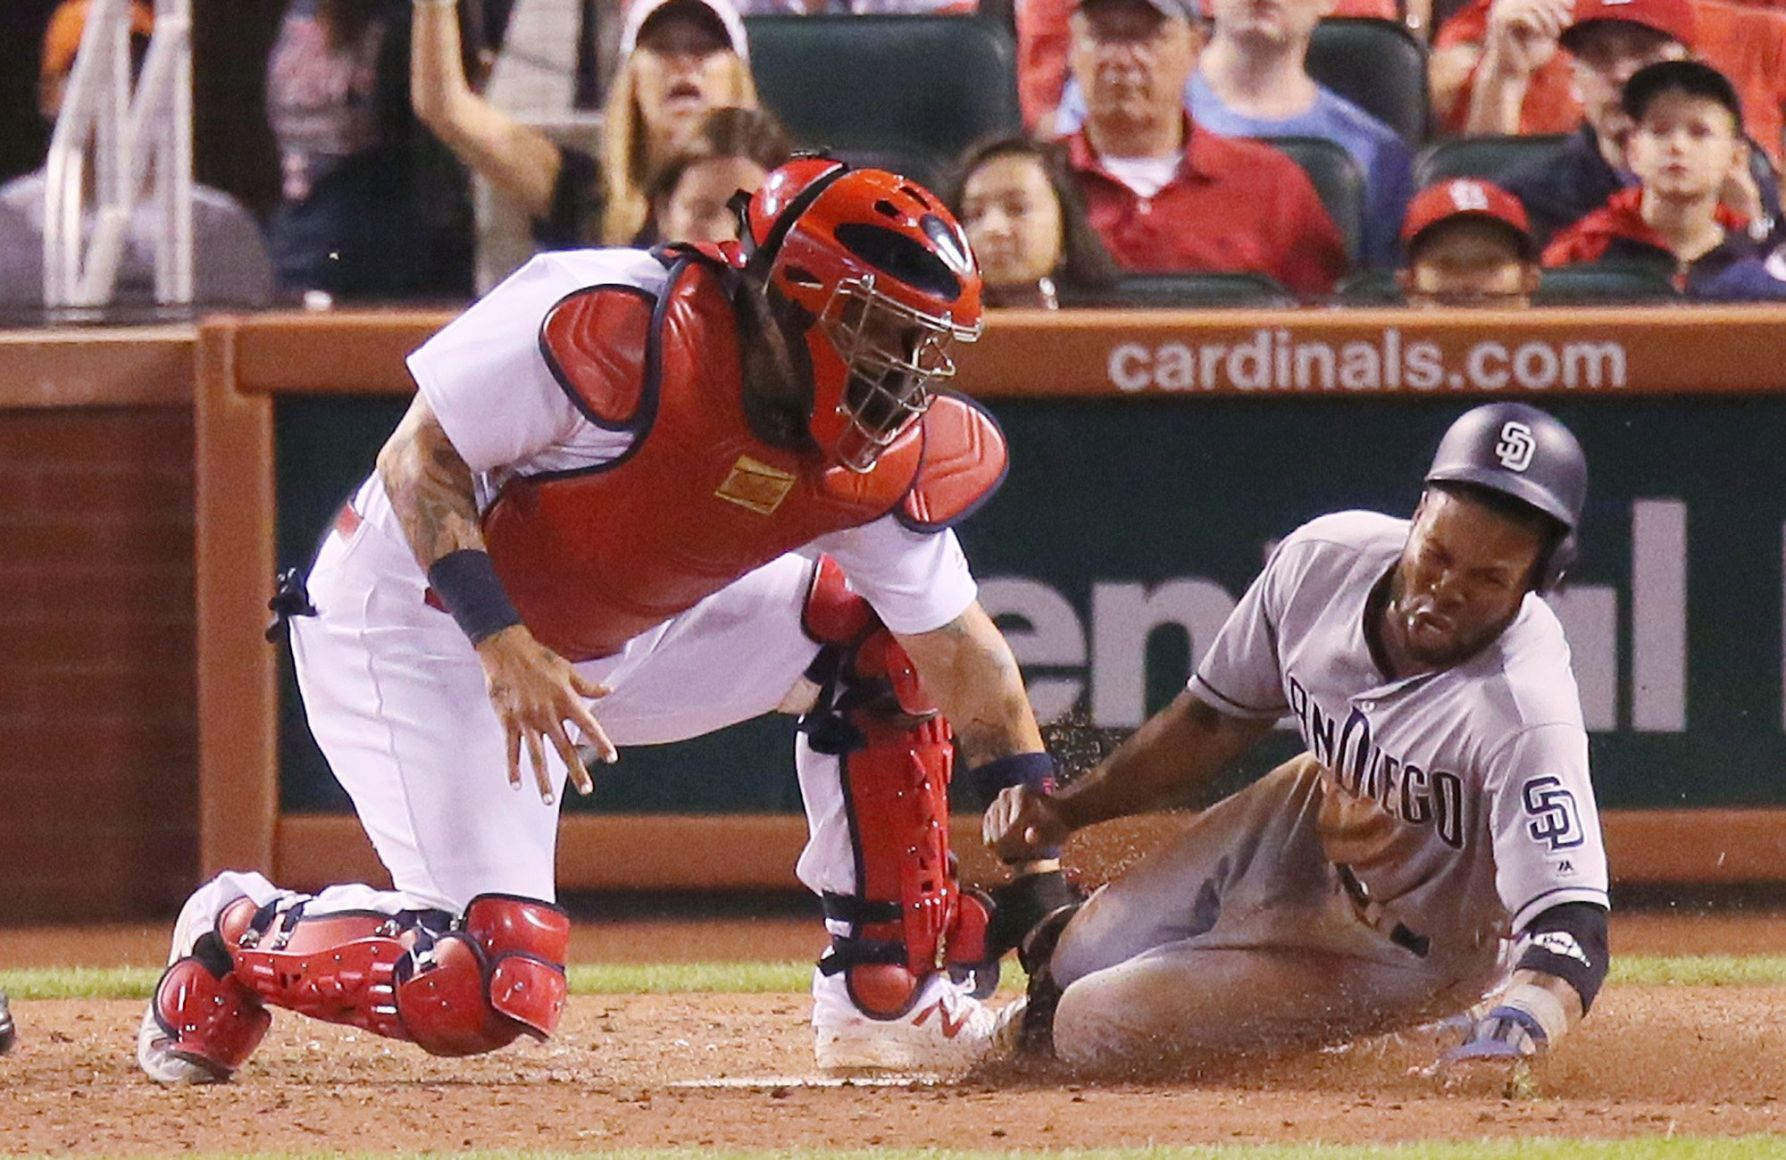 Padres Take Series from Cardinals, Winning Decisive Game, 4-3